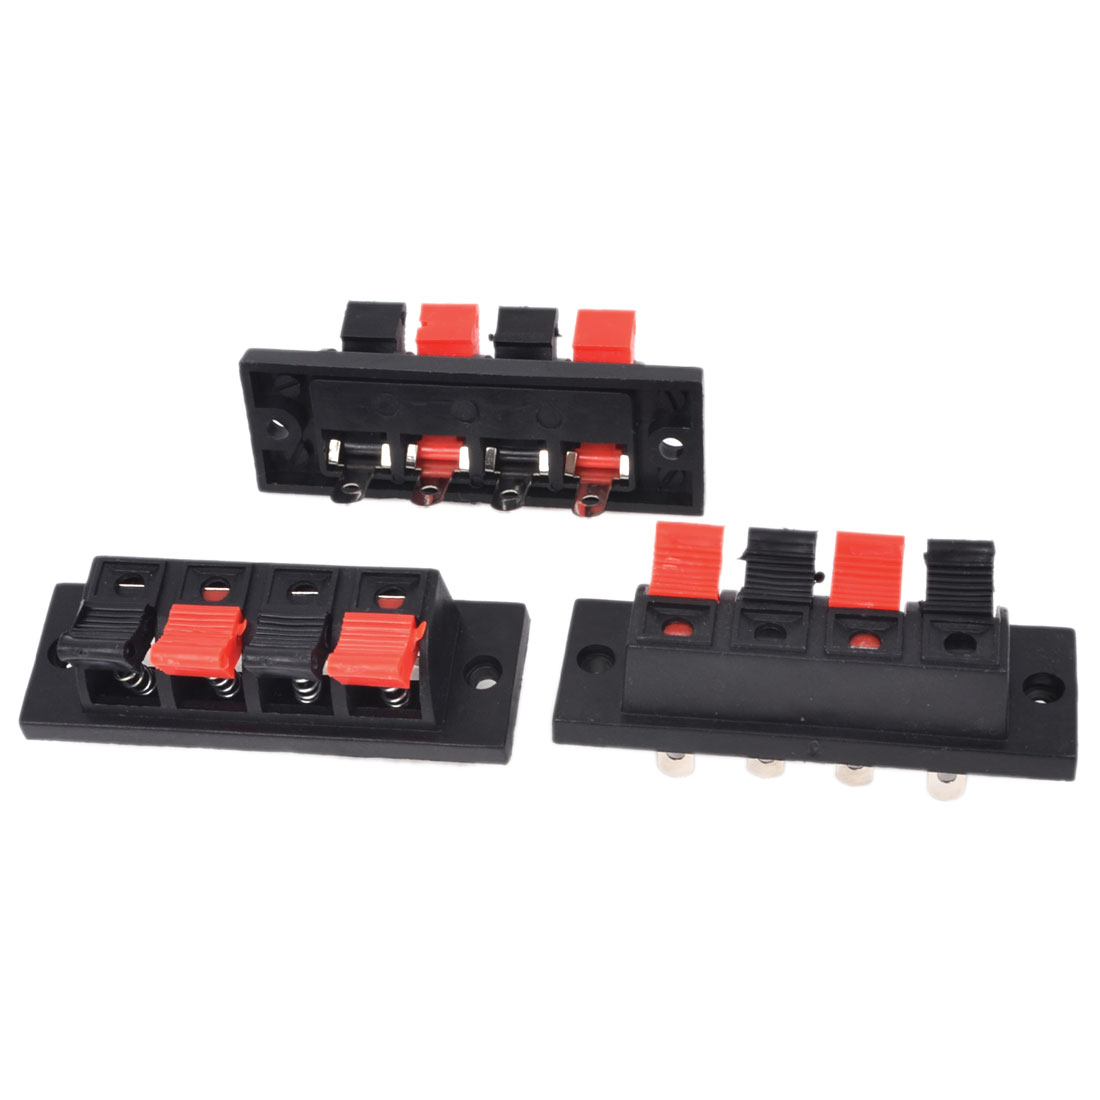 3Pcs 4 Way Large Stereo Speaker Plate Terminal Strip Push Release Connector Block